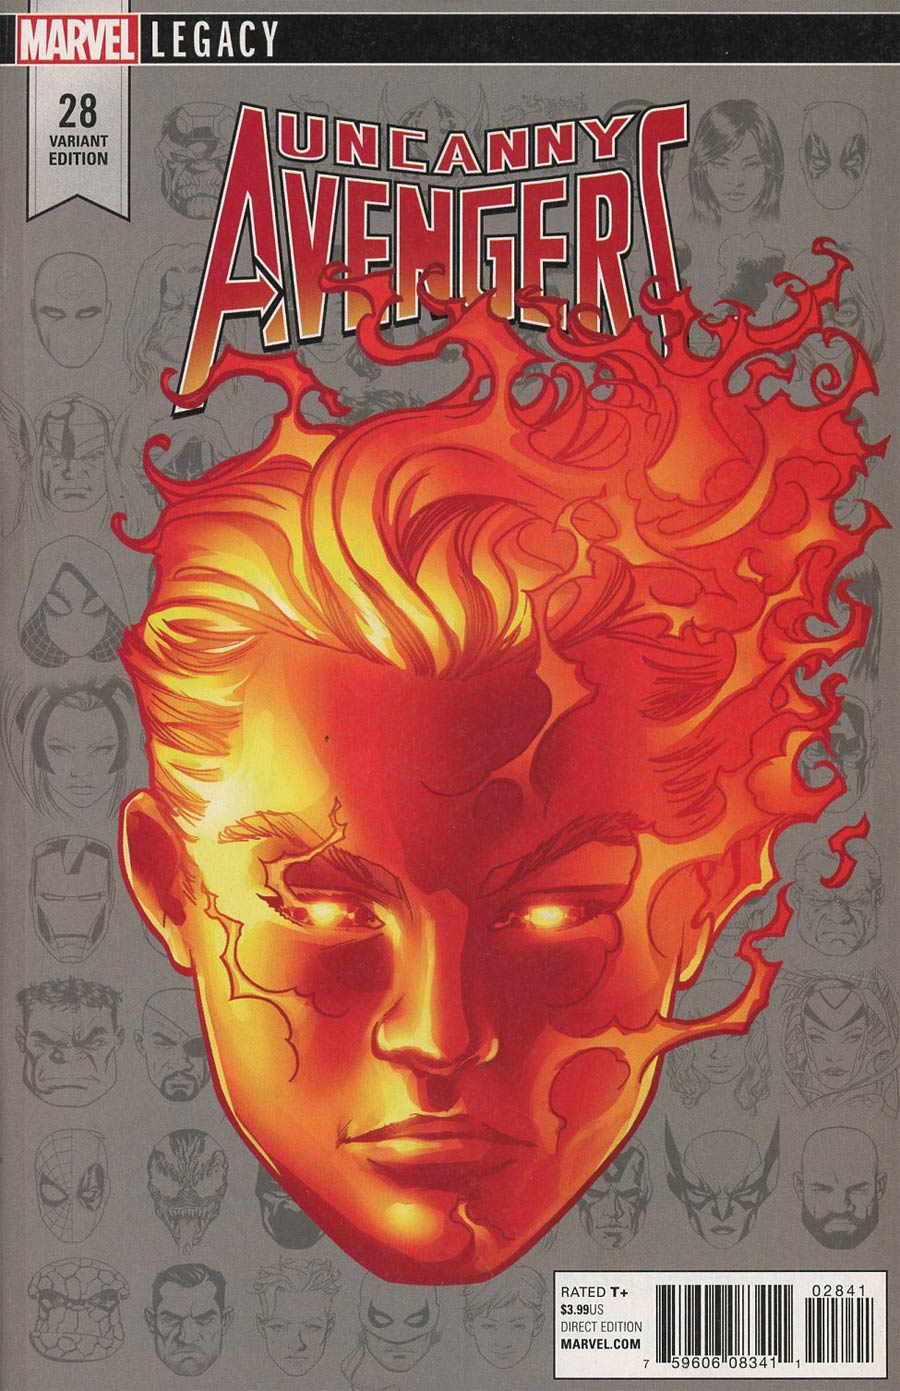 Uncanny Avengers Vol 3 #28 Cover D Incentive Mike McKone Legacy Headshot Variant Cover (Marvel Legacy Tie-In)